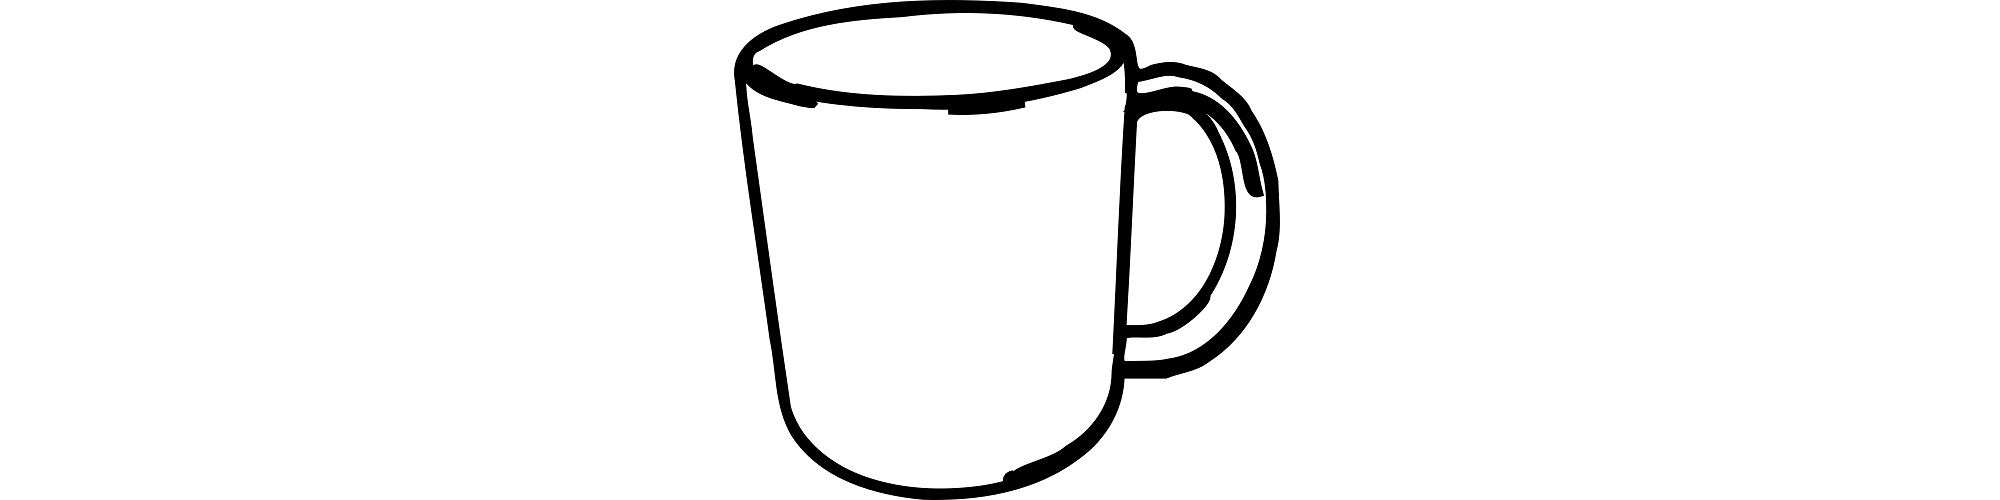 "Mug illustration - ""The Mug"" flash fiction"